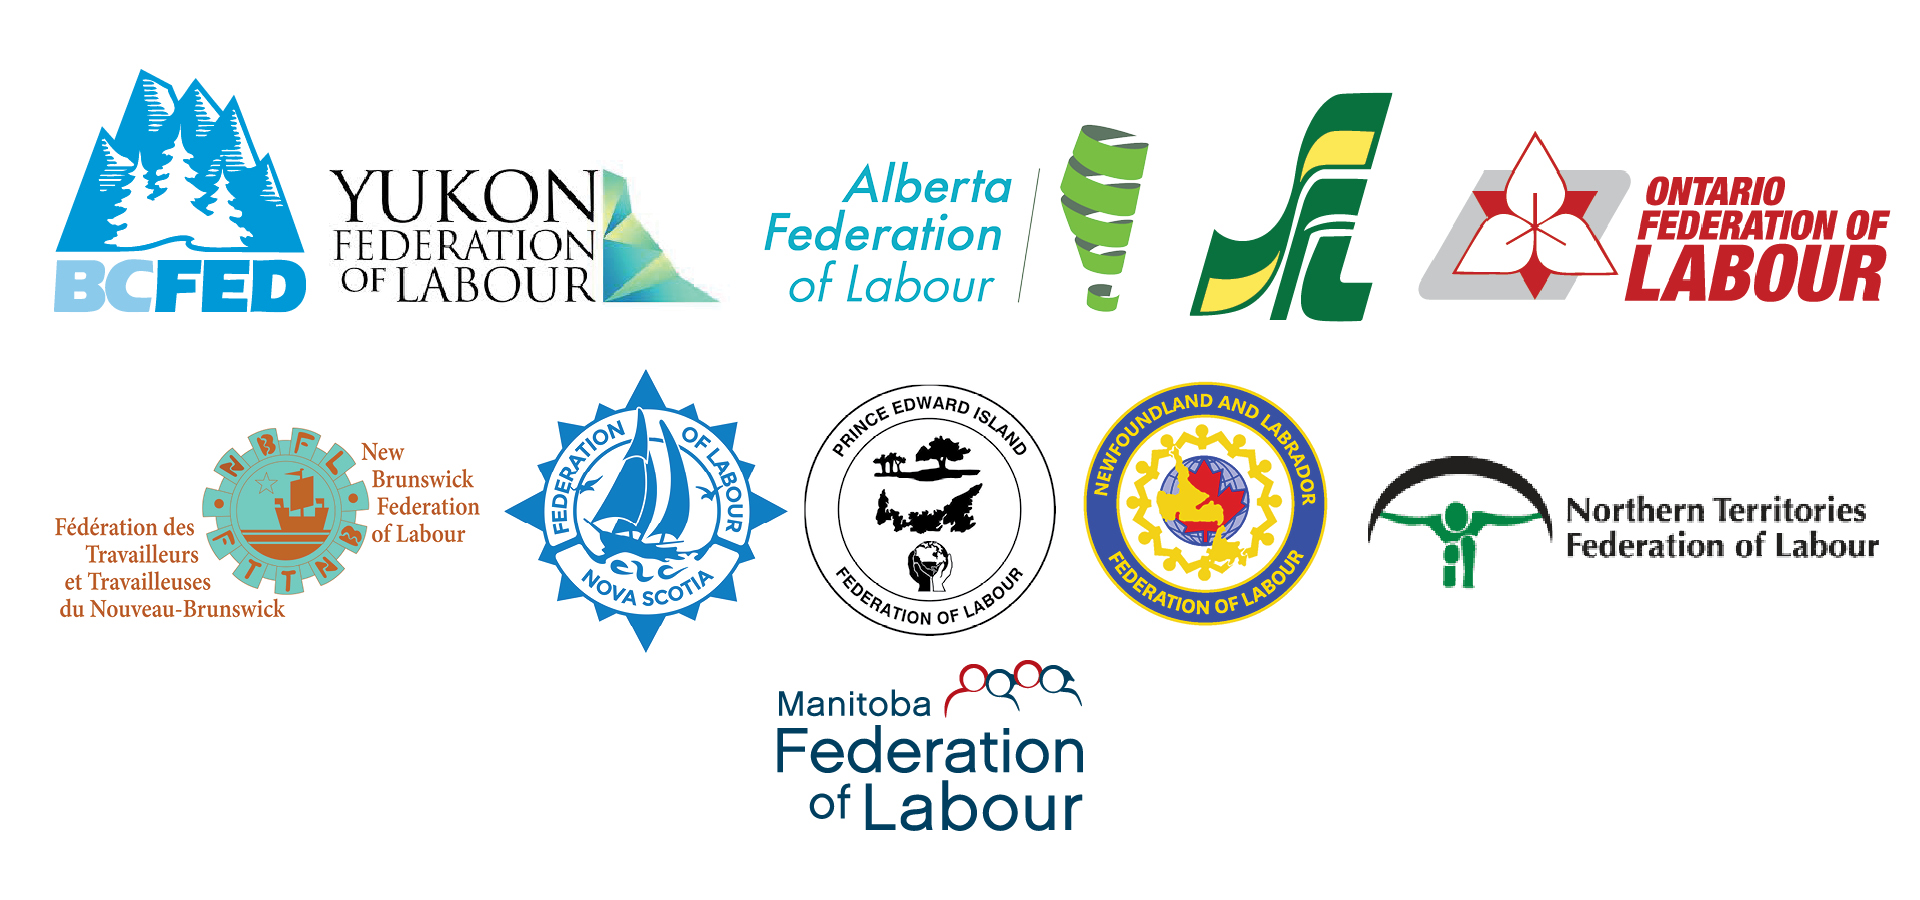 Canada's provincial and territorial federations of labour